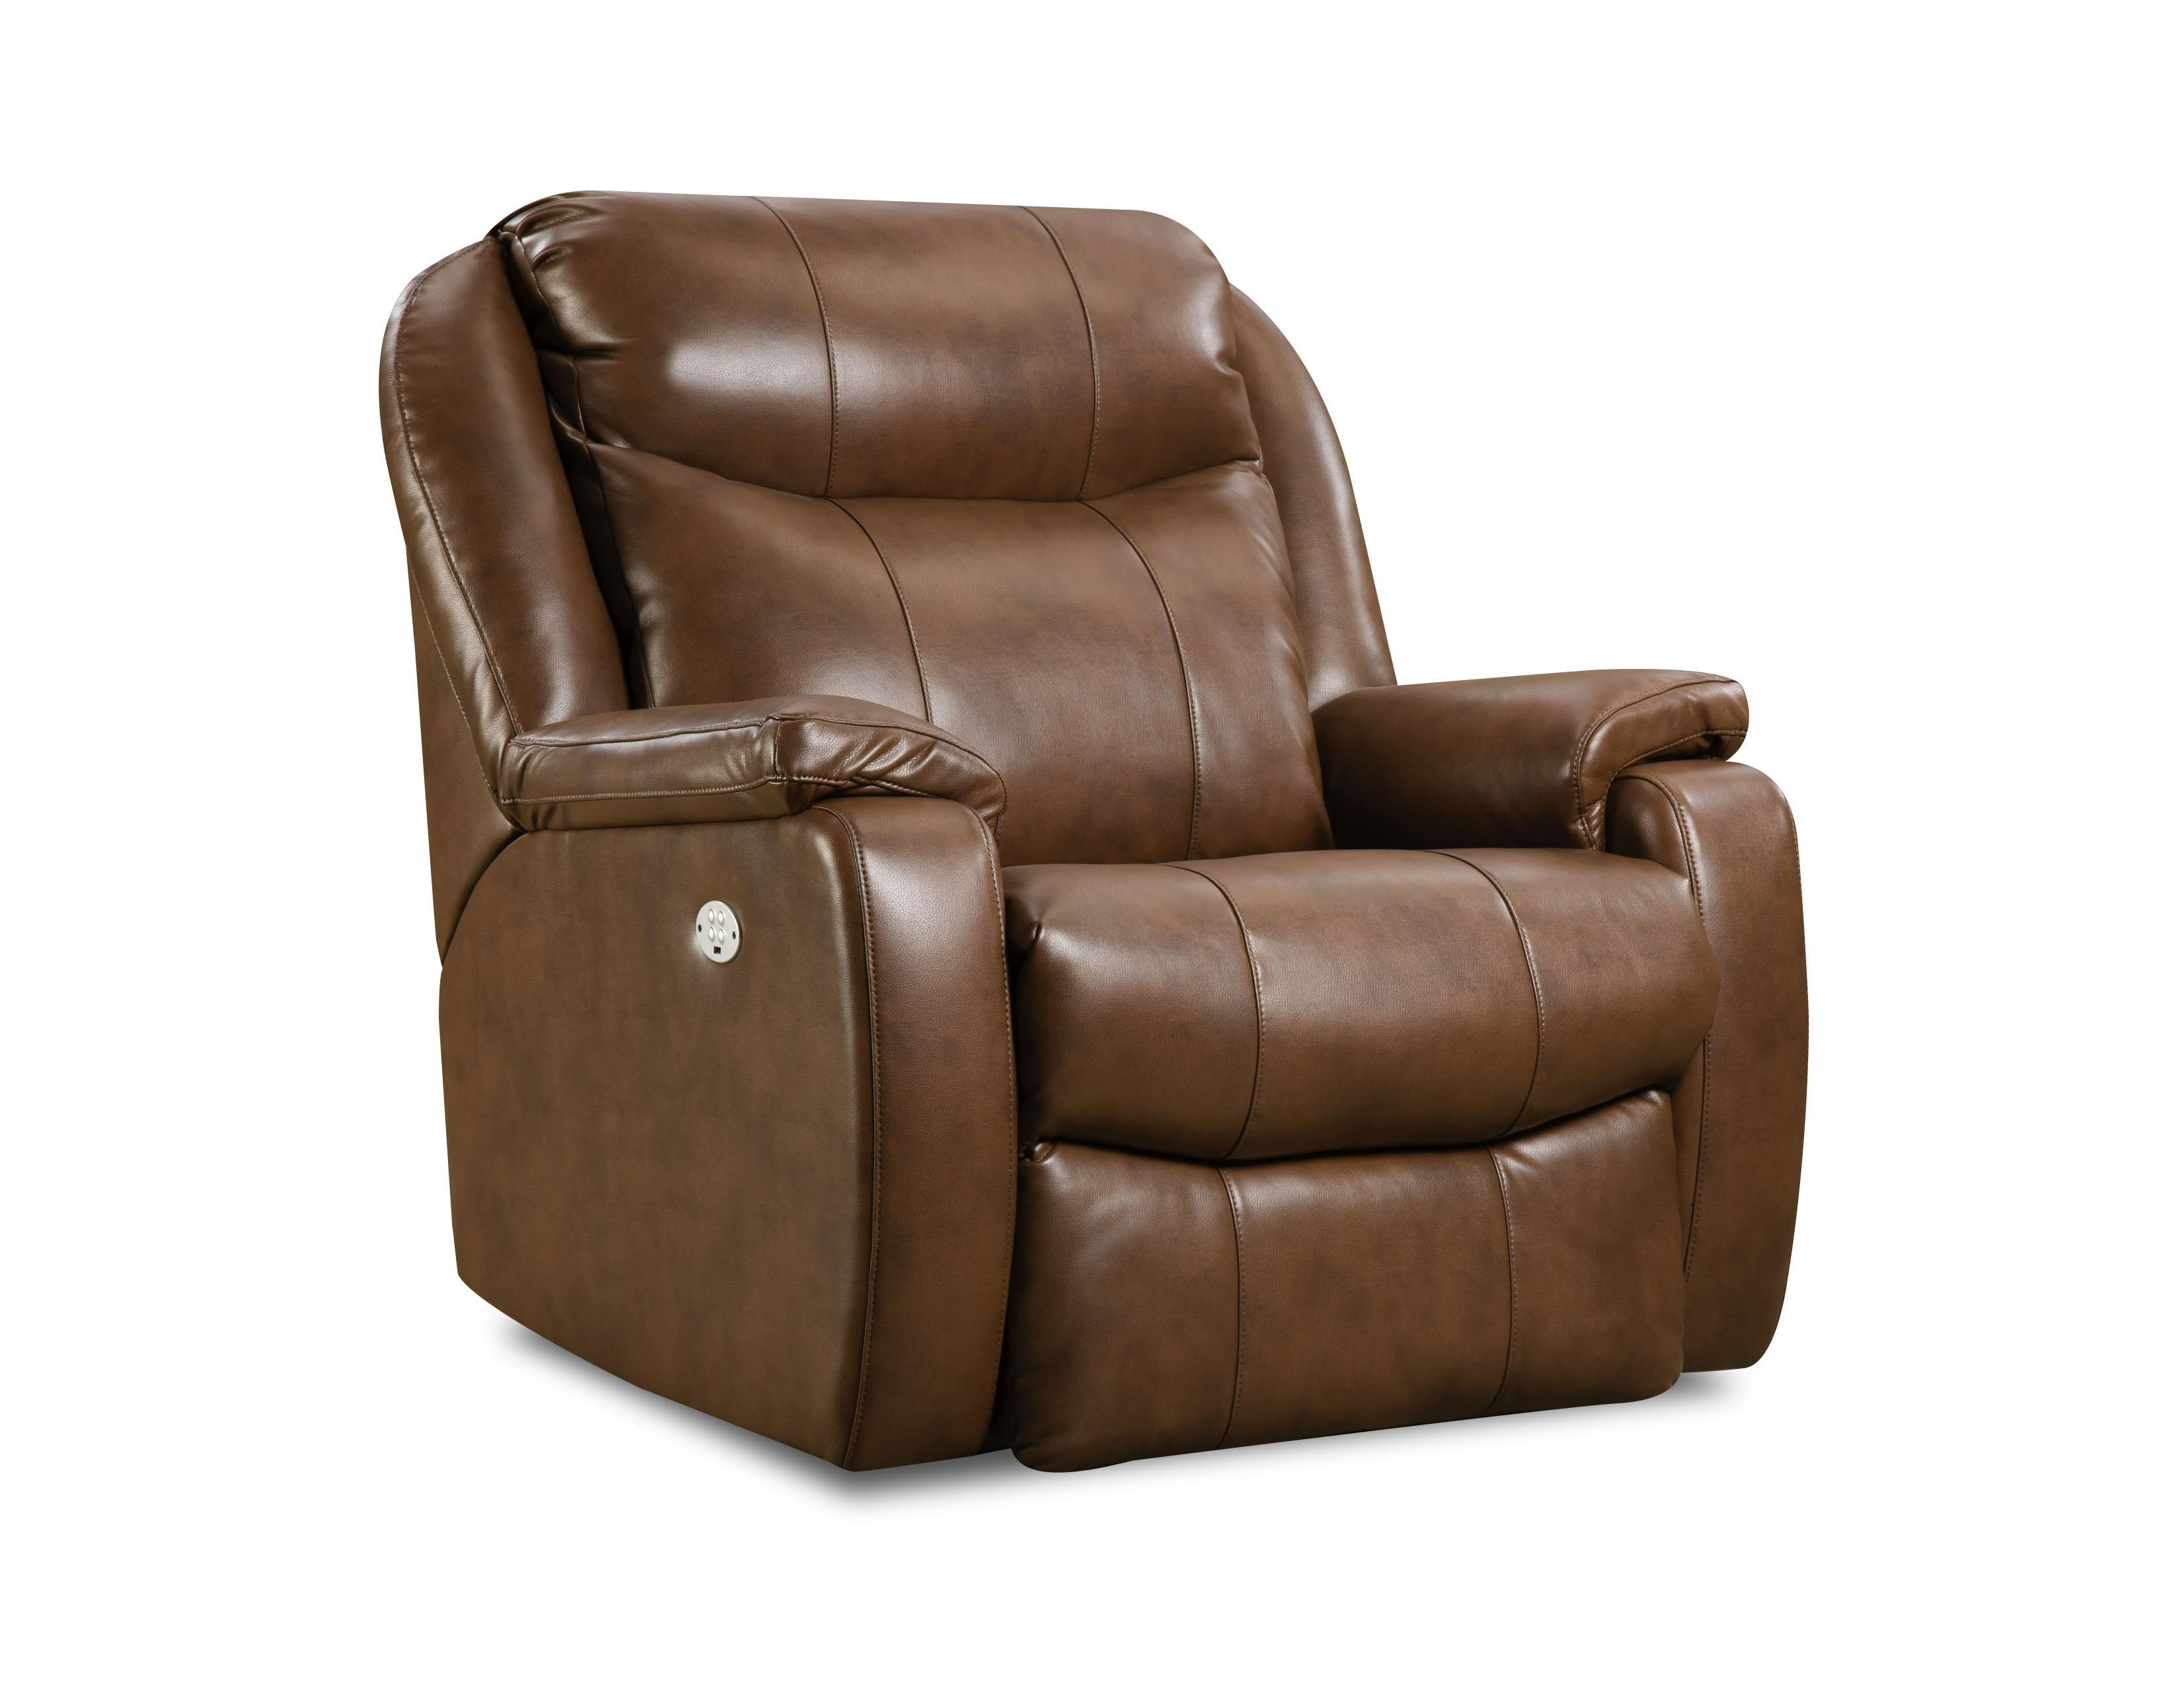 Southern Motion Recliners 6240P Hercules Big Mans Power